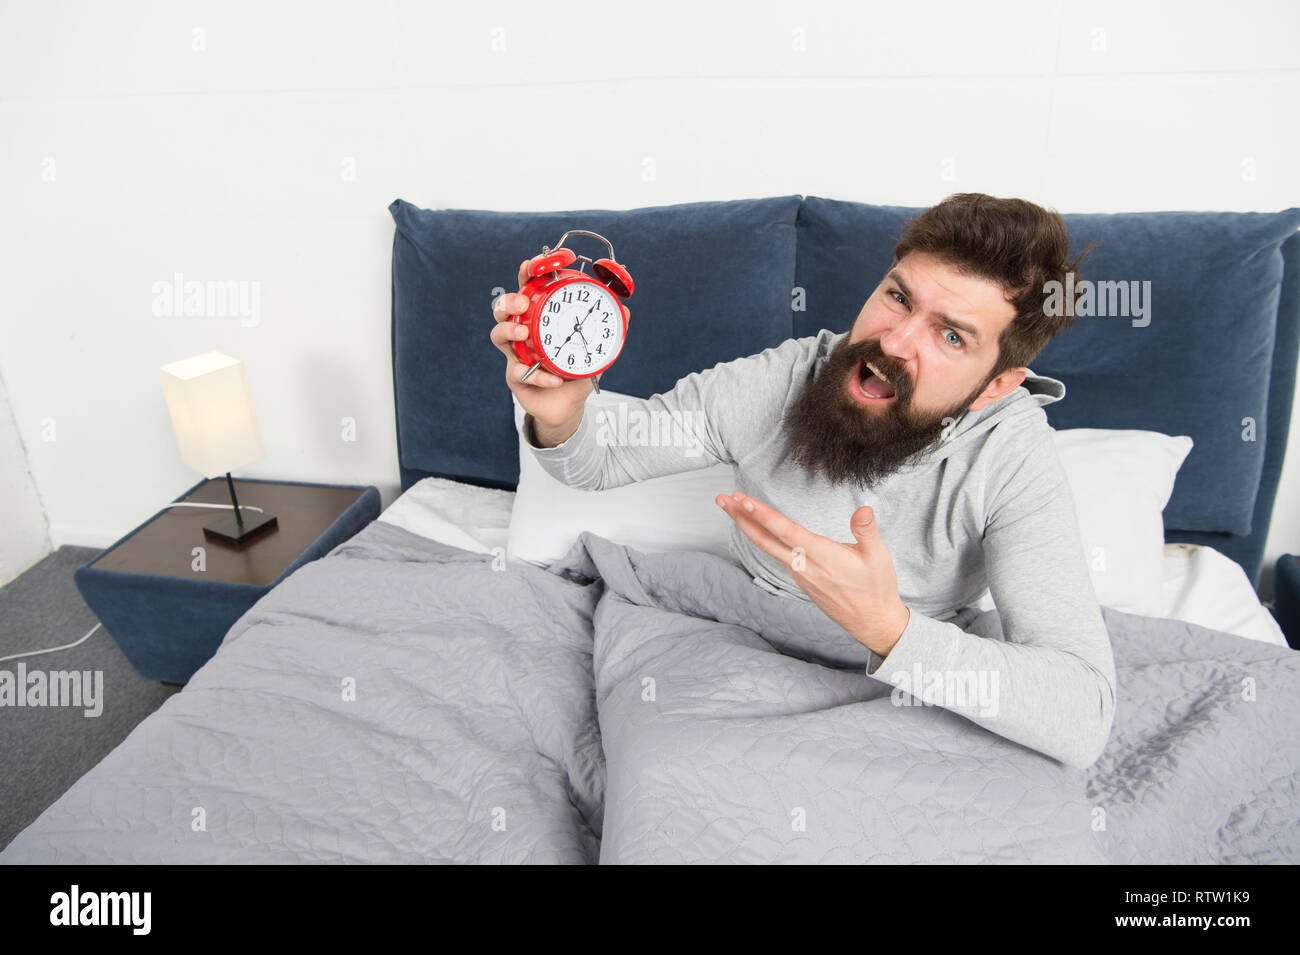 Get up early. Tips for waking up early. Man bearded hipster sleepy face waking up. Daily schedule for healthy lifestyle. Alarm clock ringing. Hate this noise. Problem with early morning awakening. - Stock Image